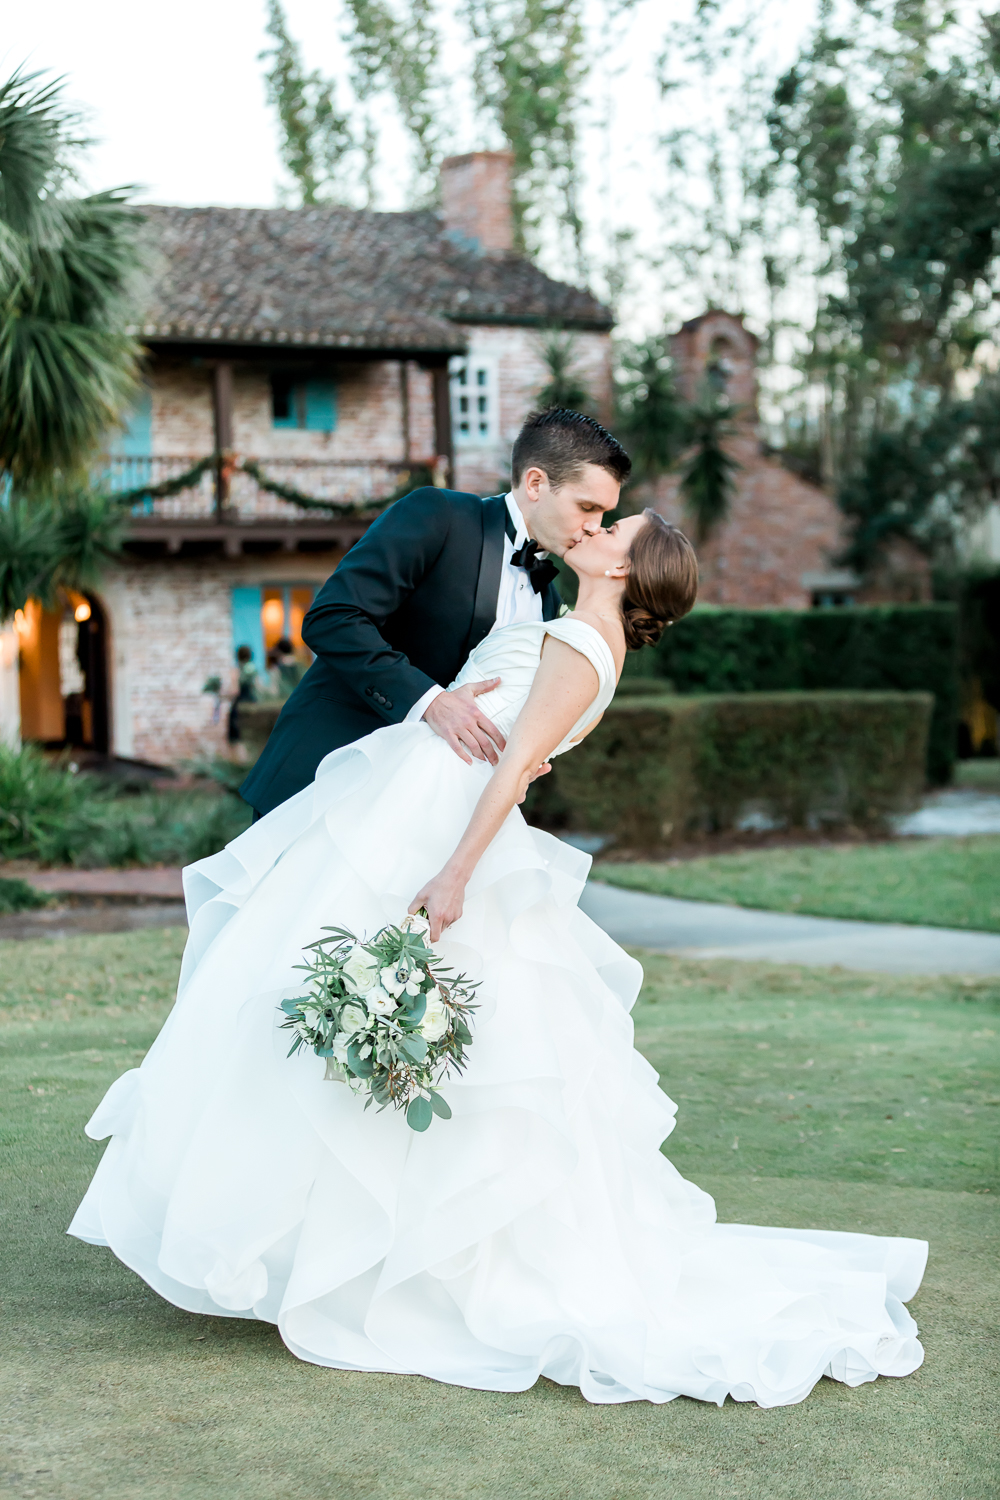 first kiss after getting martried in casa feliz, winter park, fl